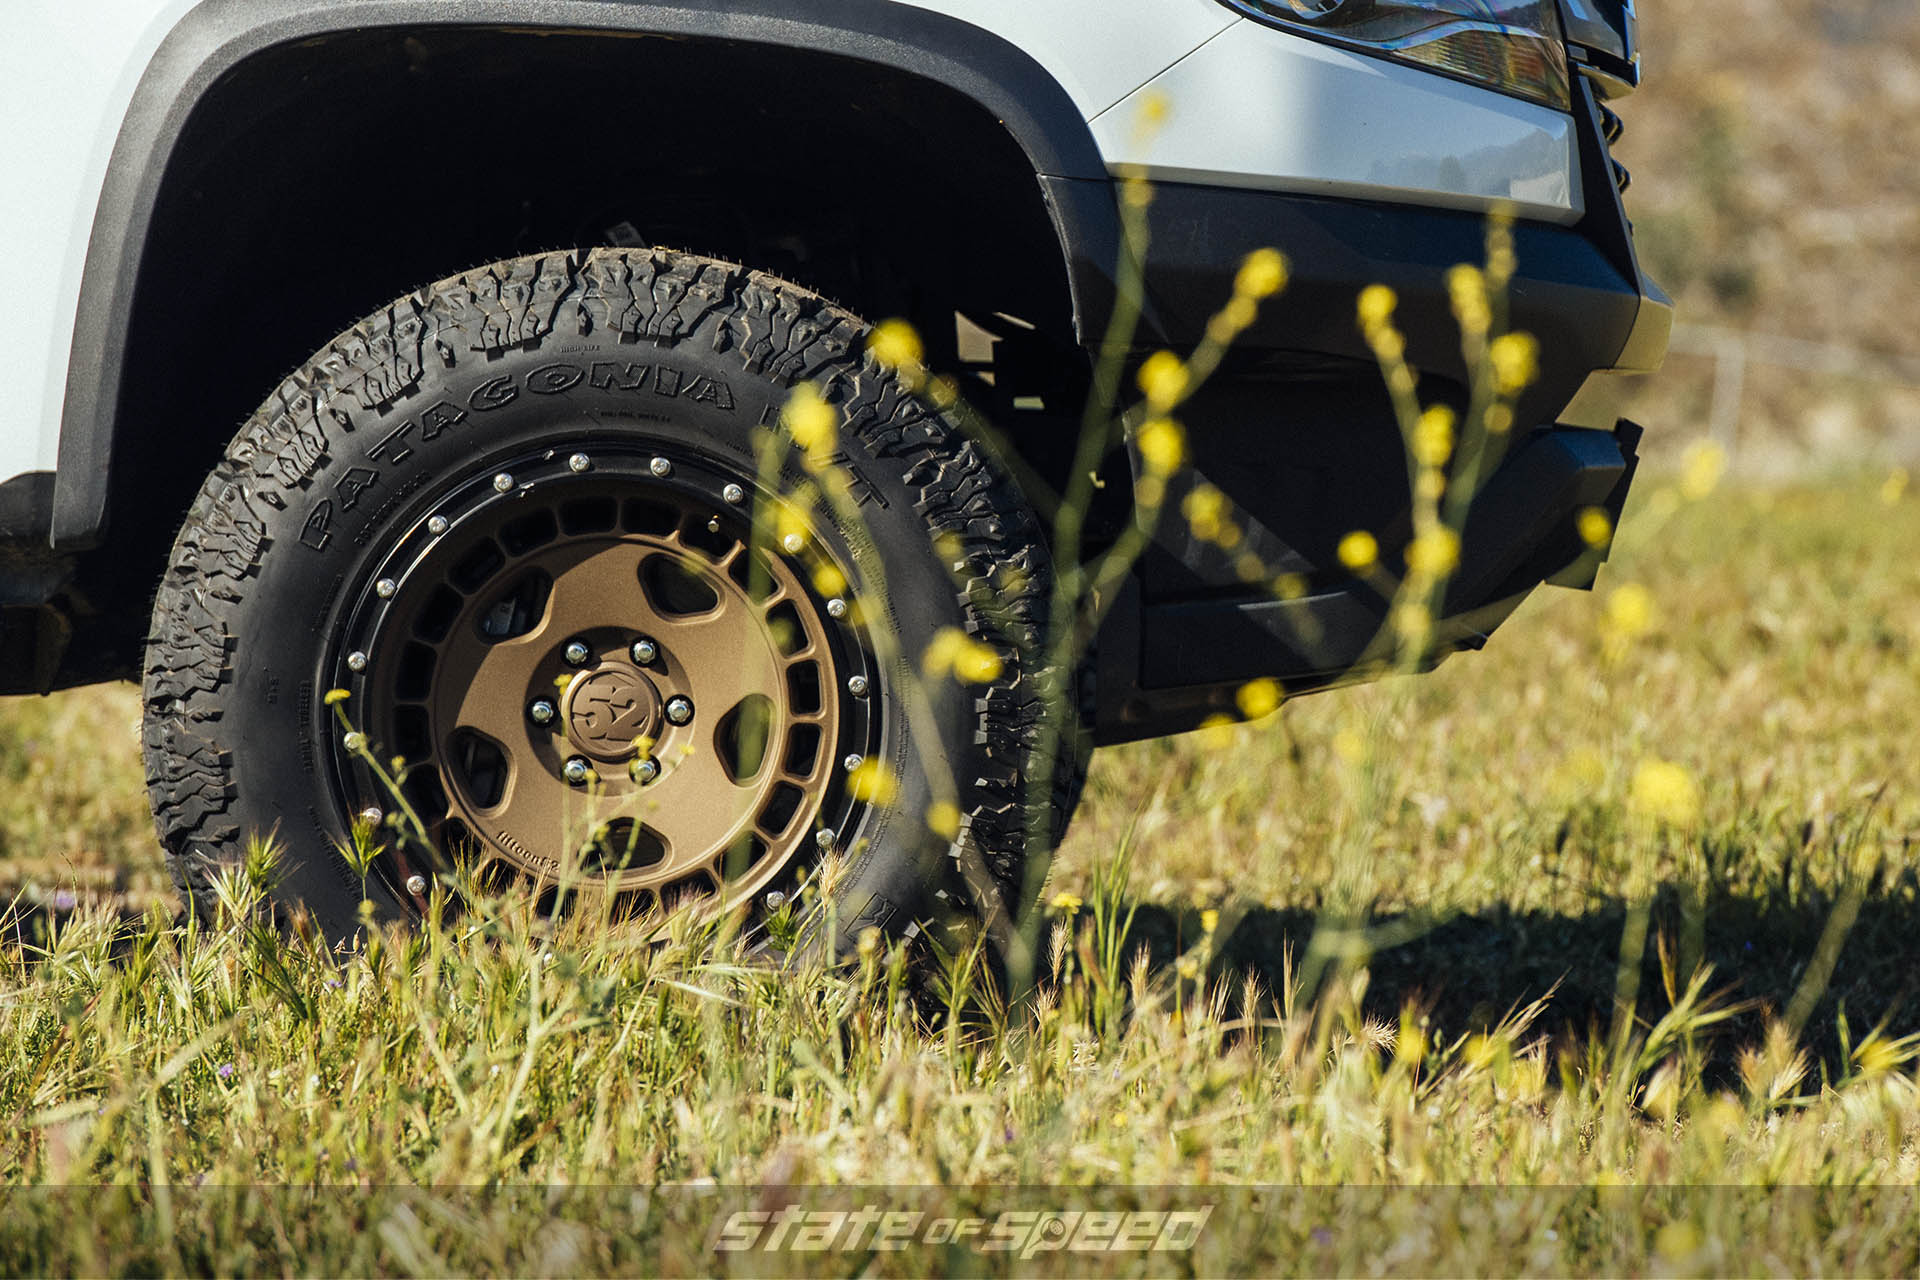 Milestar Patagonia M/Ts on Fifteen52 wheels on Toyota 4Runner